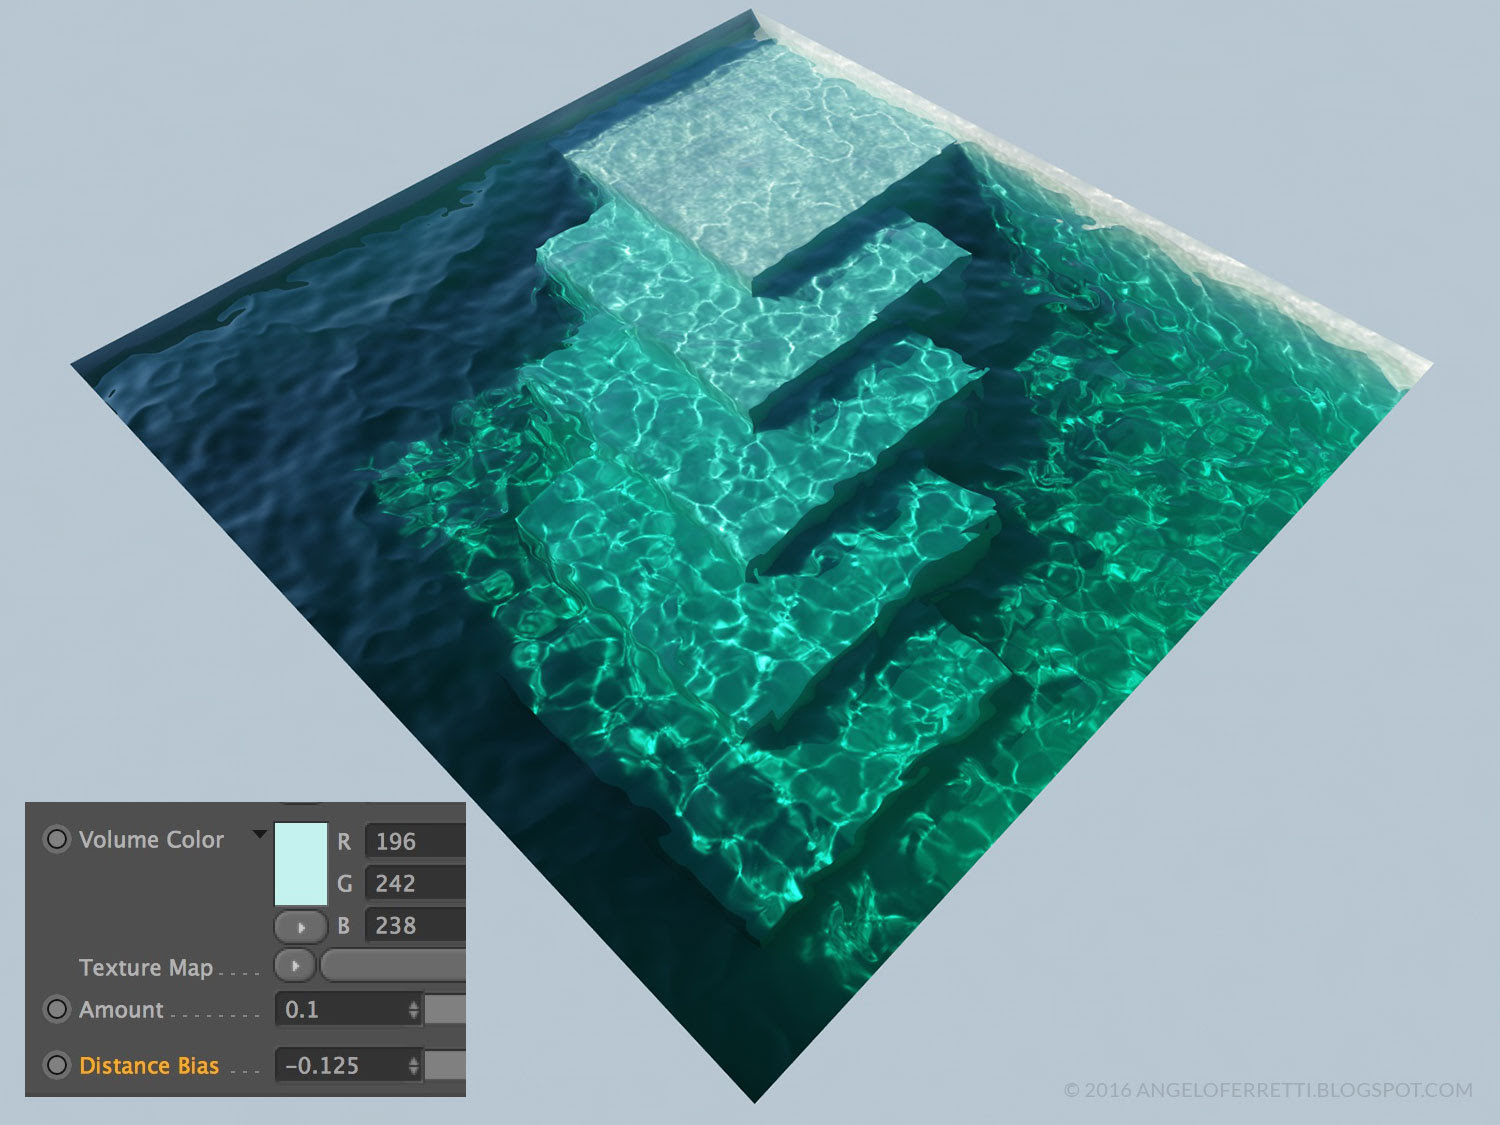 acqua e caustiche con Cinema 4D e Vray